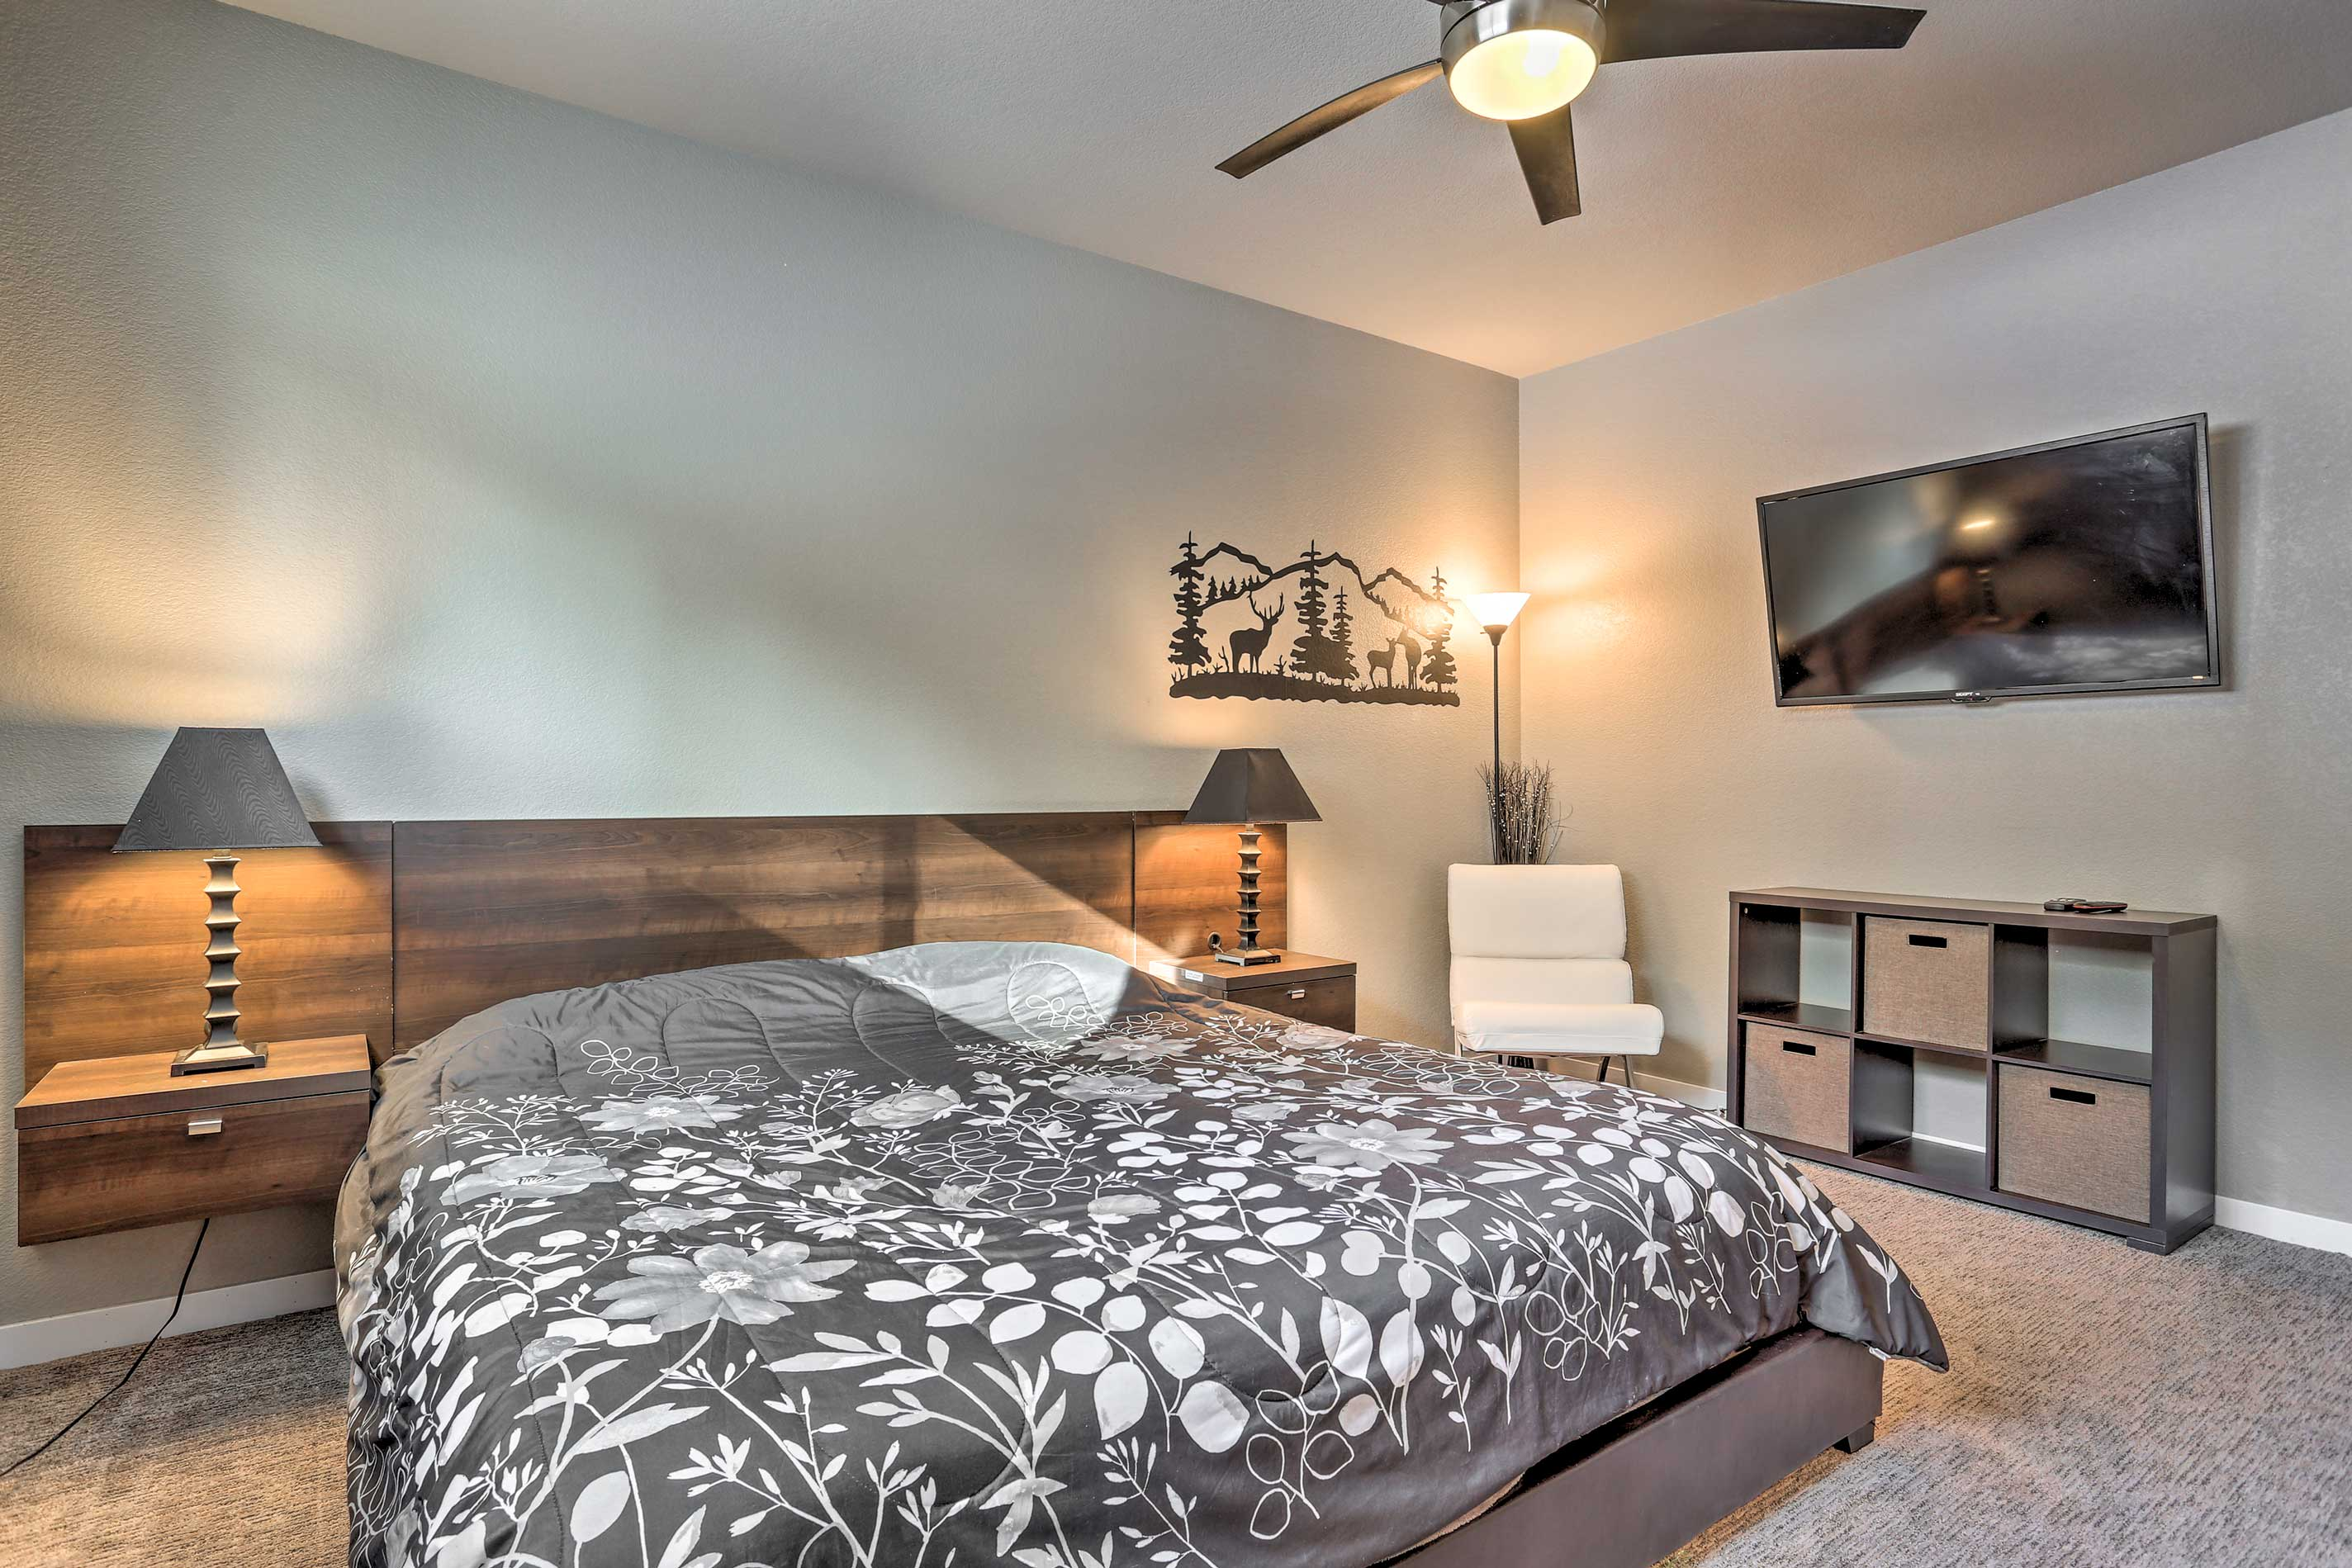 You'll find another king bed in this second bedroom.